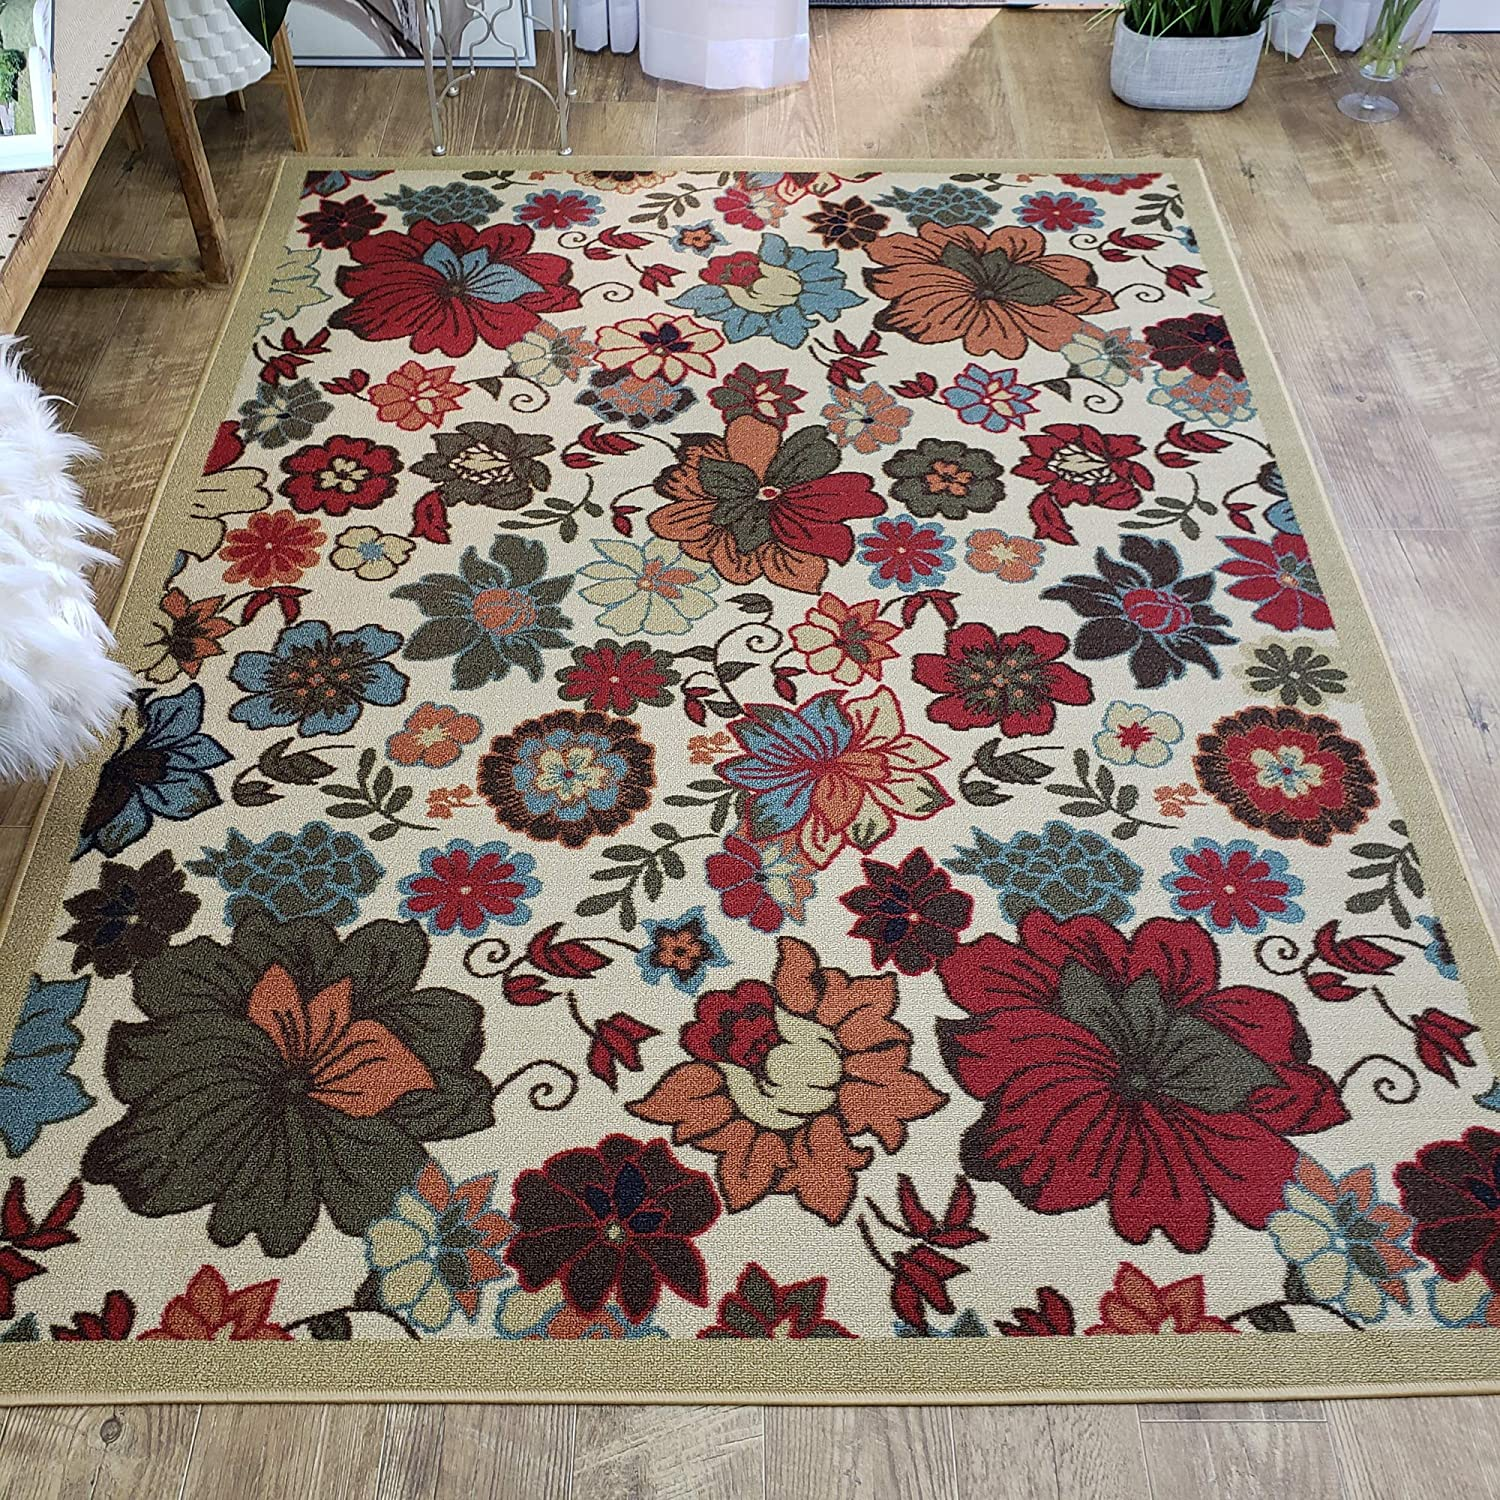 Area Rug 3x5 Beige Floral Kitchen Rugs and mats | Rubber Backed Non Skid Rug Living Room Bathroom Nursery Home Decor Under Door Clearance Entryway Floor Non Slip Washable | Made in Europe